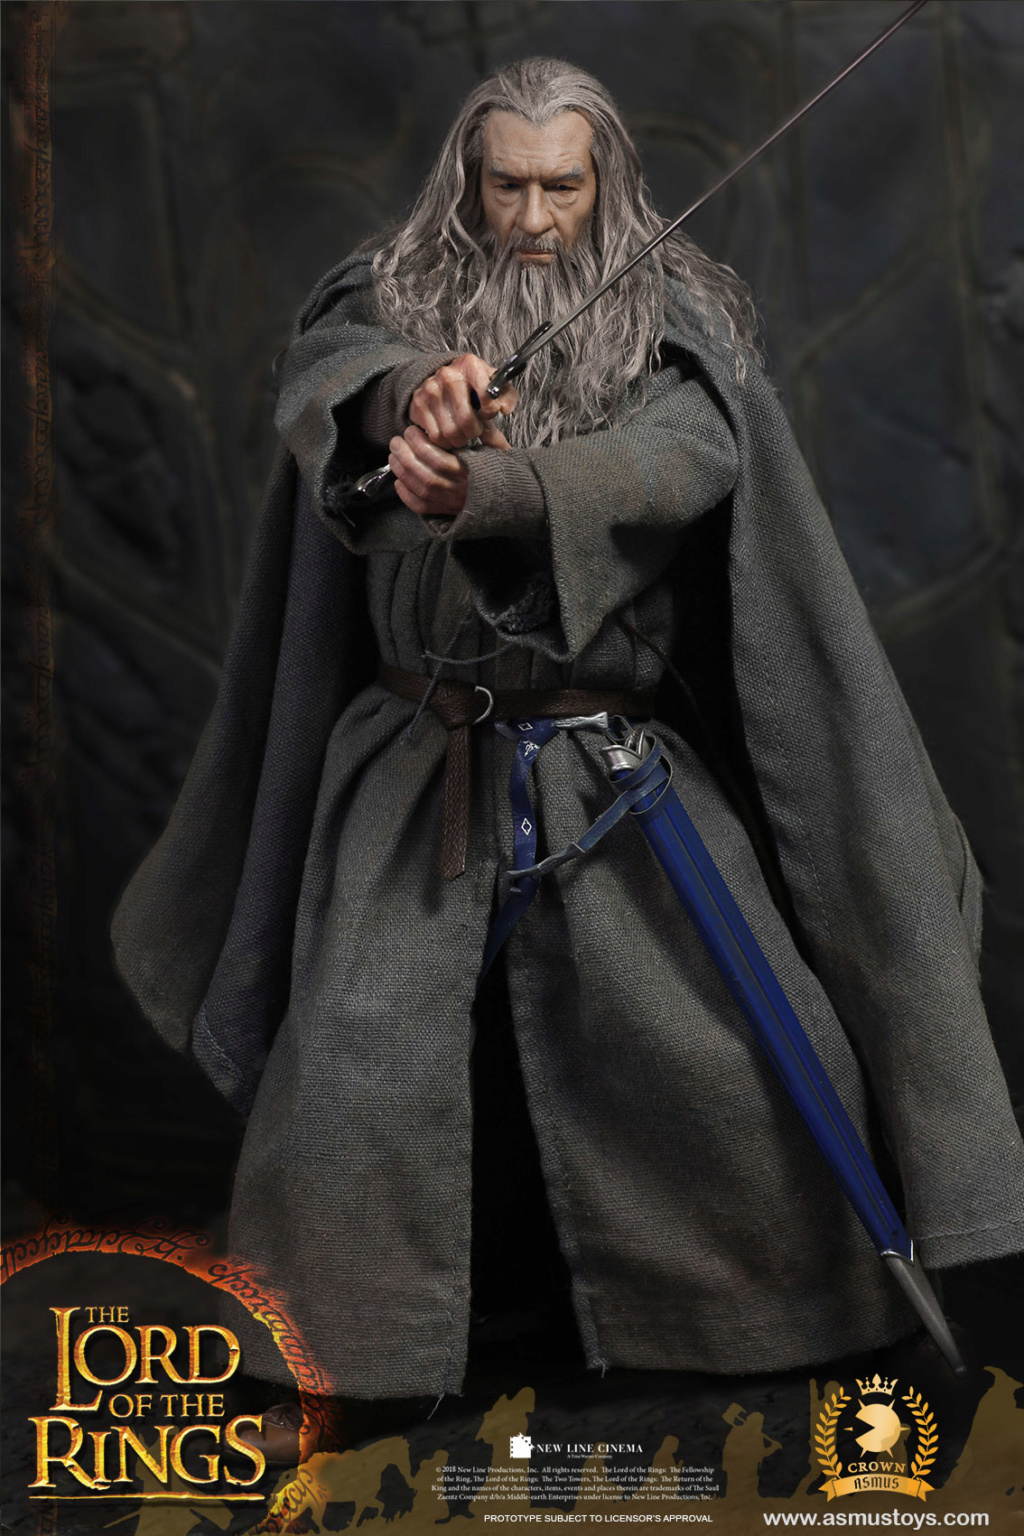 lordoftherings - NEW PRODUCT: ASMUS TOYS THE CROWN SERIES : GANDALF THE GREY 1/6 figure 4235